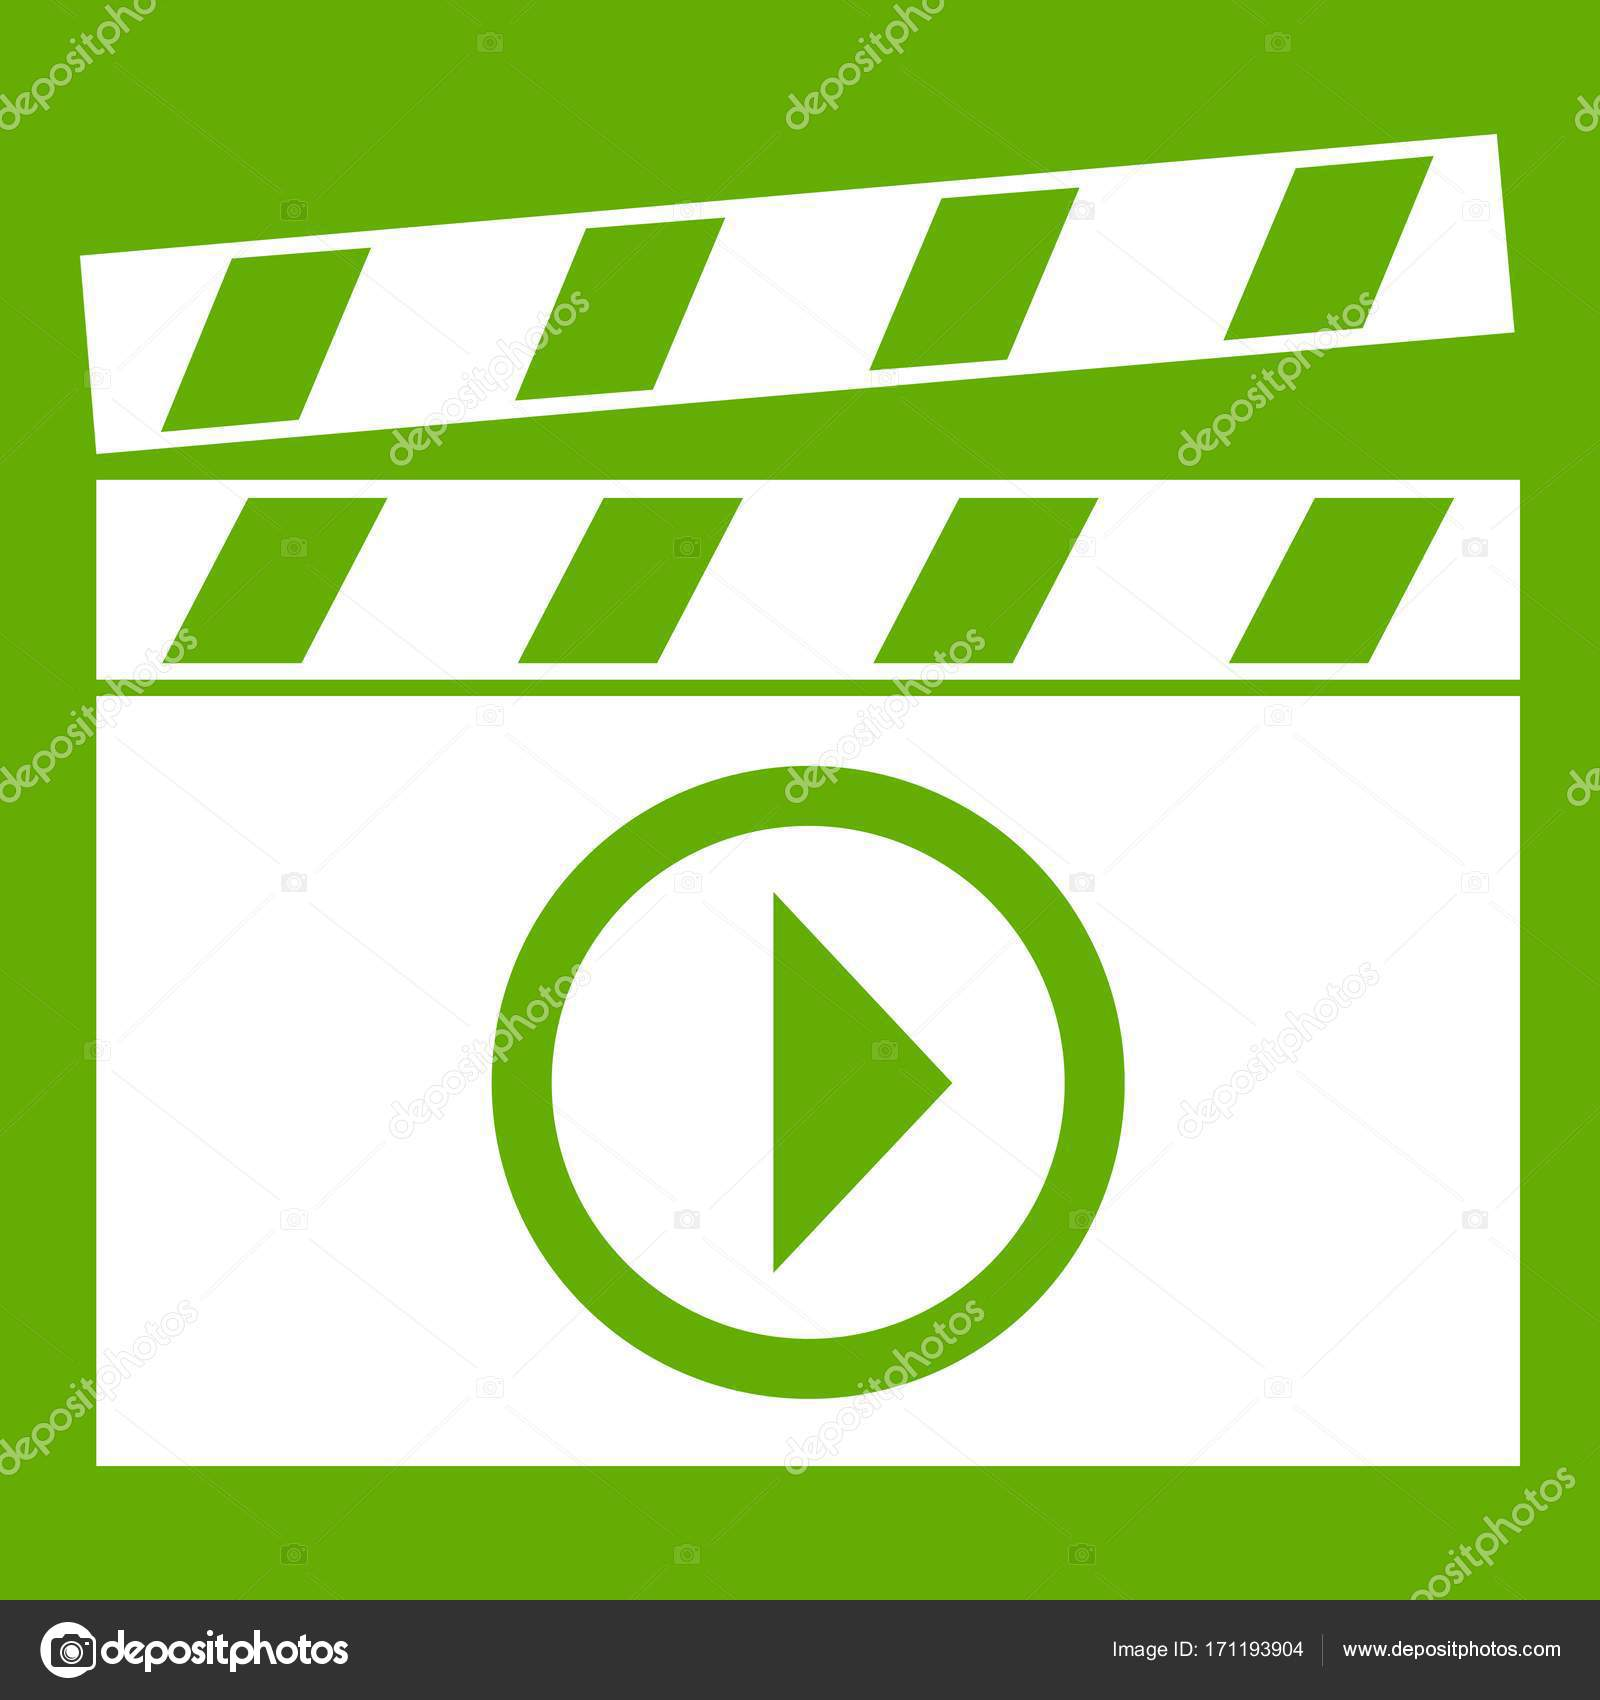 Clapperboard for movie shooting icon green stock vector clapperboard for movie shooting icon green stock vector biocorpaavc